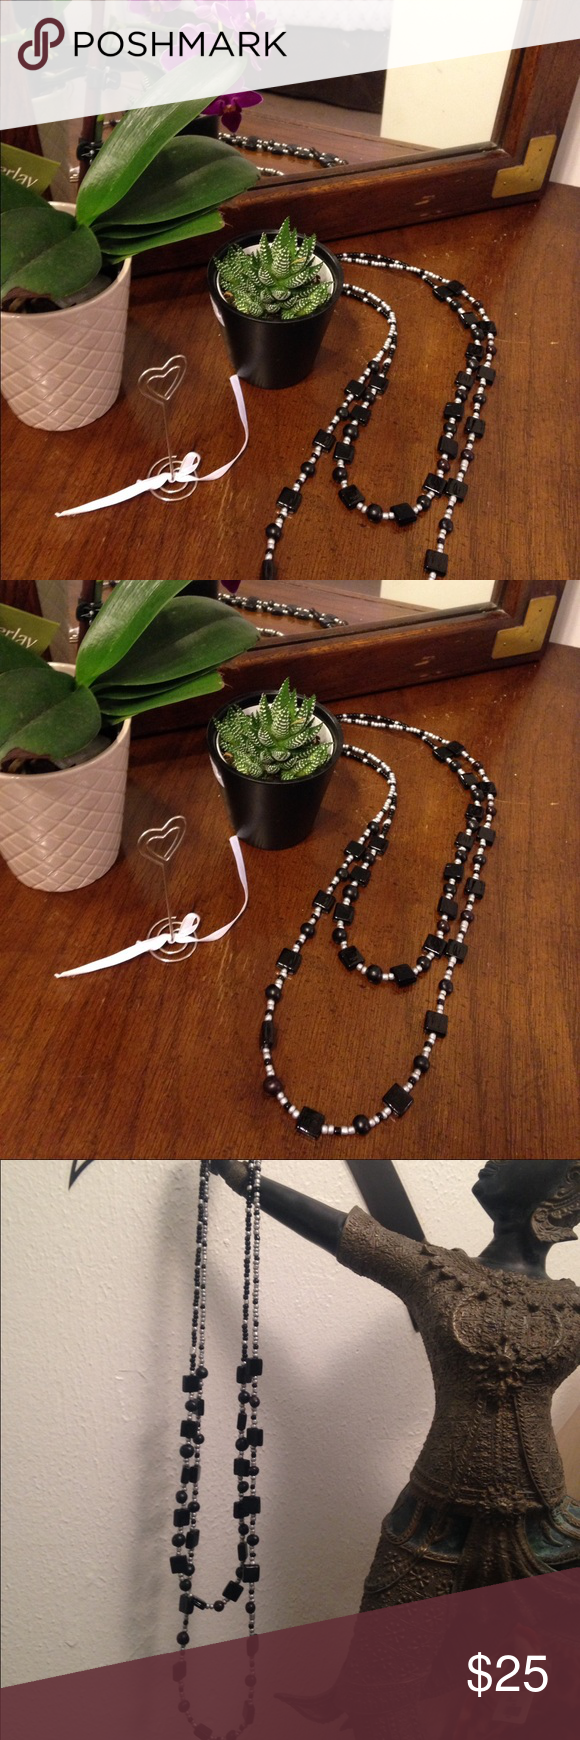 🆕 2 layers black & silver necklace Brand new 2 layers necklace made it with galss beads silver and black colors Arawak Jewelry Jewelry Necklaces